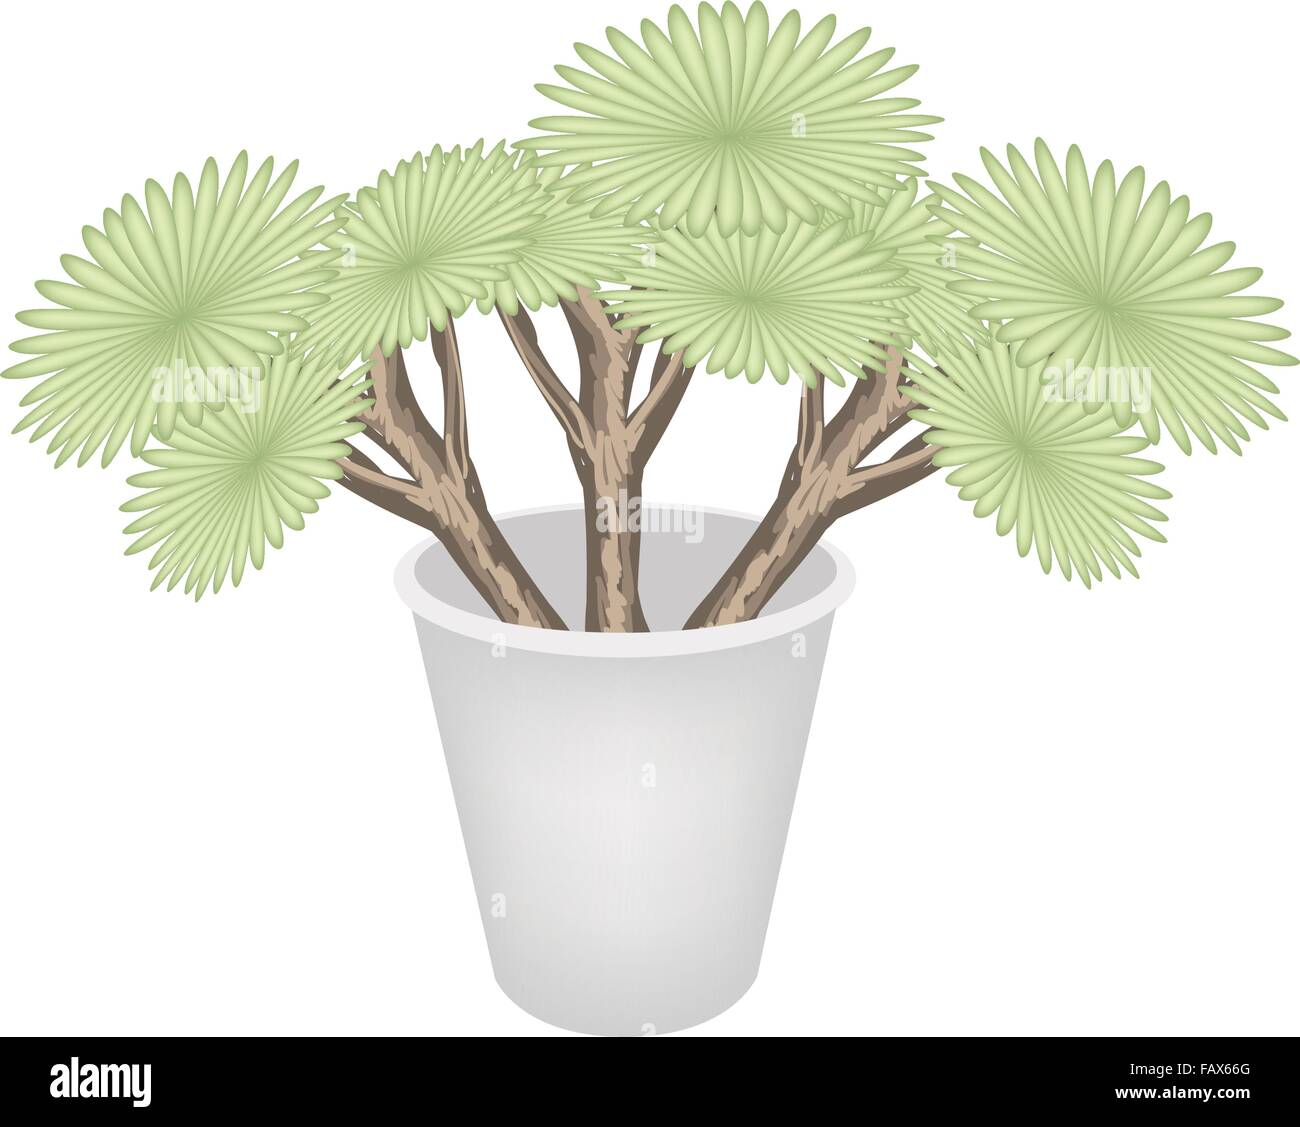 Ecological Concept, An Illustration Green Trees and Plants of Dragon Trees in Flowerpot for Garden Decoration. - Stock Vector